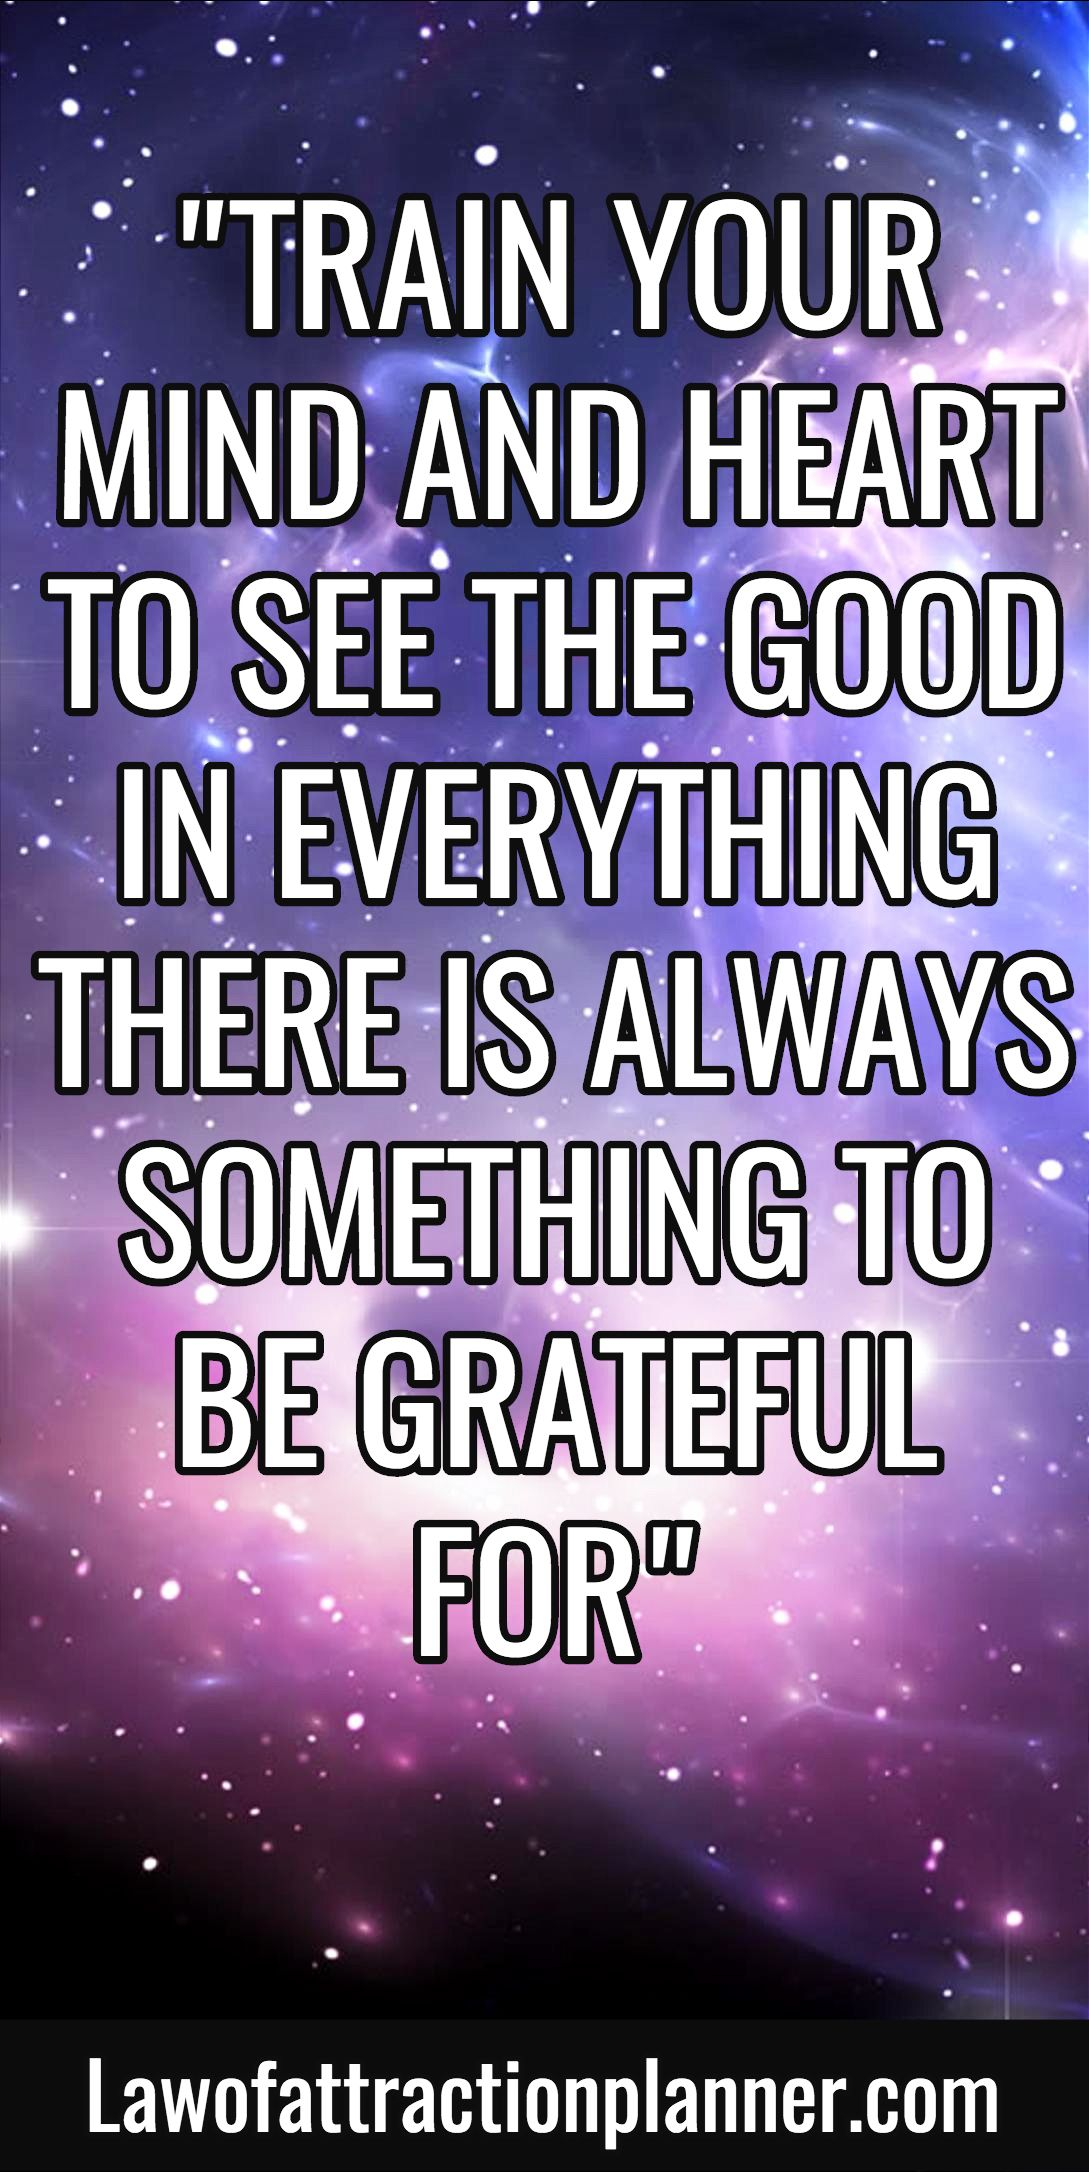 Train Your Mind And Heart To See The Good In Everything There Is Always Something To Be Grateful For Liv Spiritual Words Wise Quotes Gratitude Journal Prompts